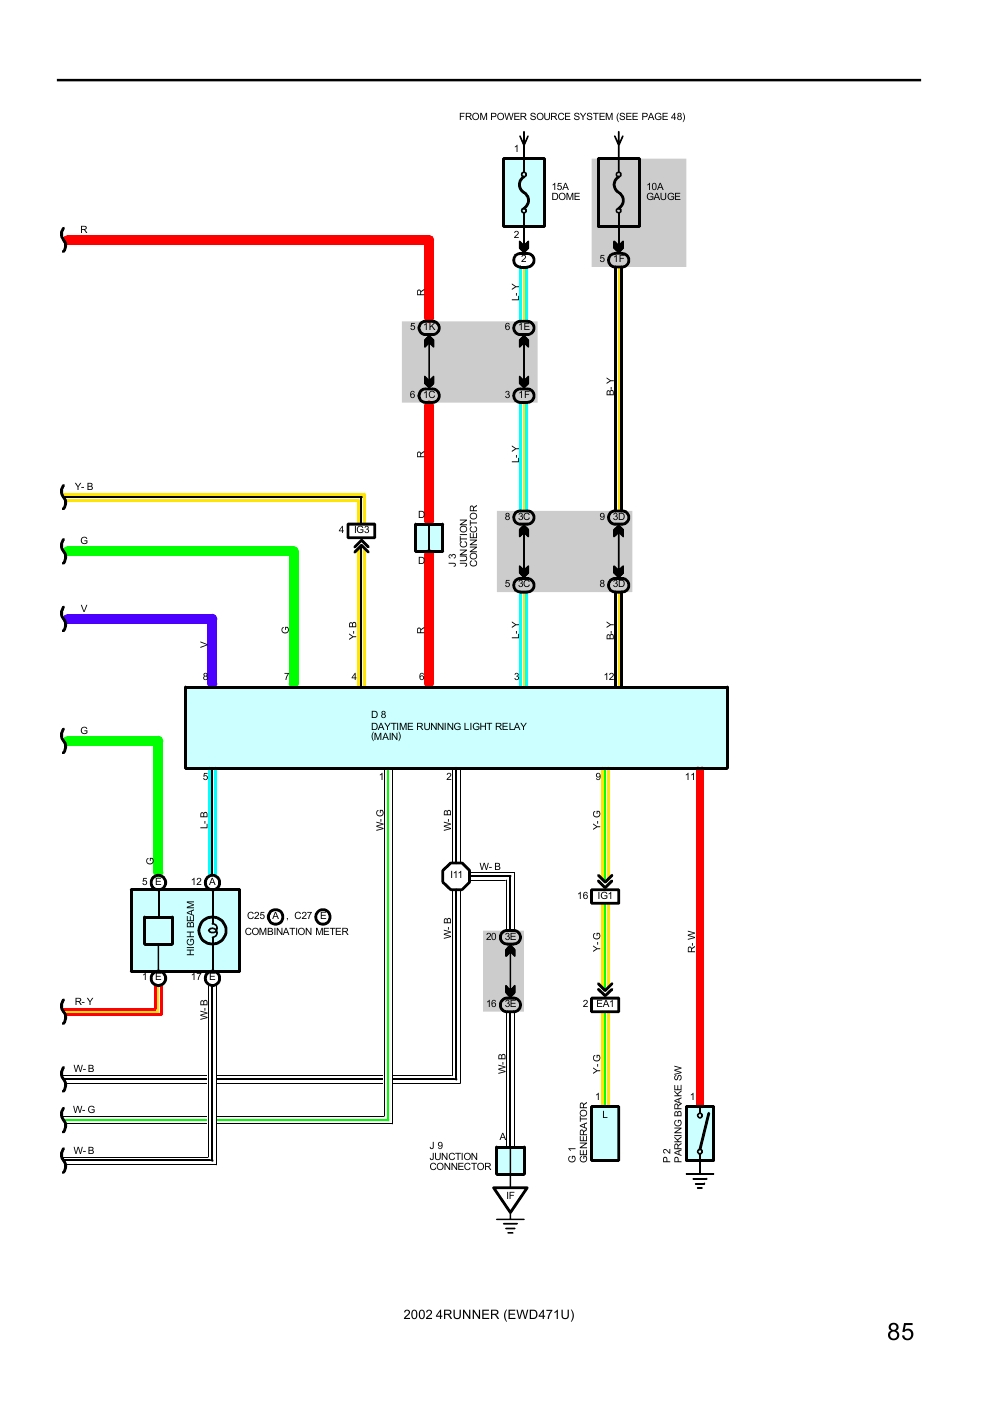 Hilux Headlight Wiring Diagram Archive Of Automotive 08 Toyota 4runner Weird Issue Help Forum Largest Rh Org 2008 Spotlight